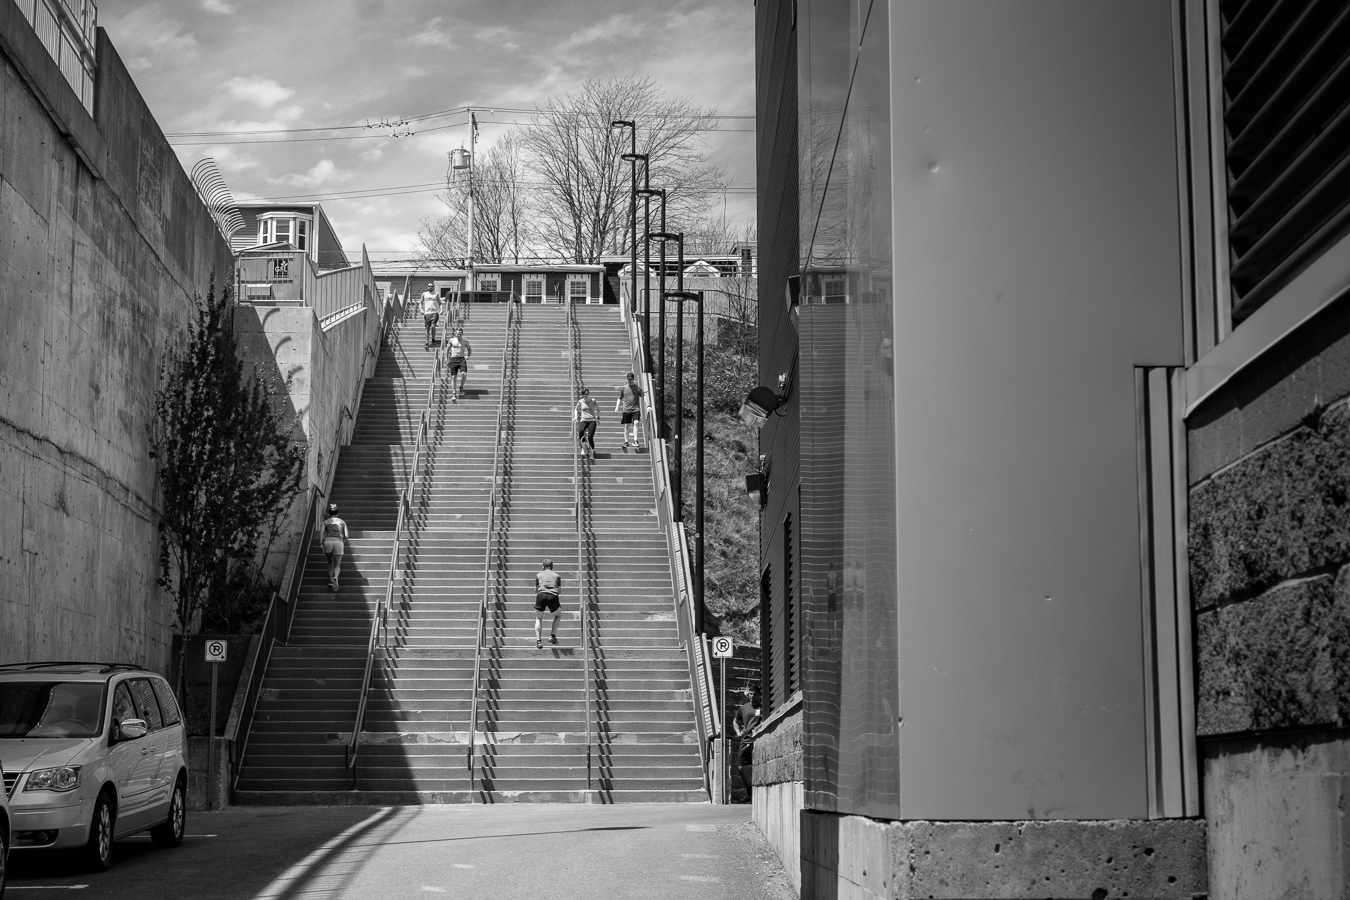 Working out on the steps - Mile One stadium - Between New Gower & Central Streets